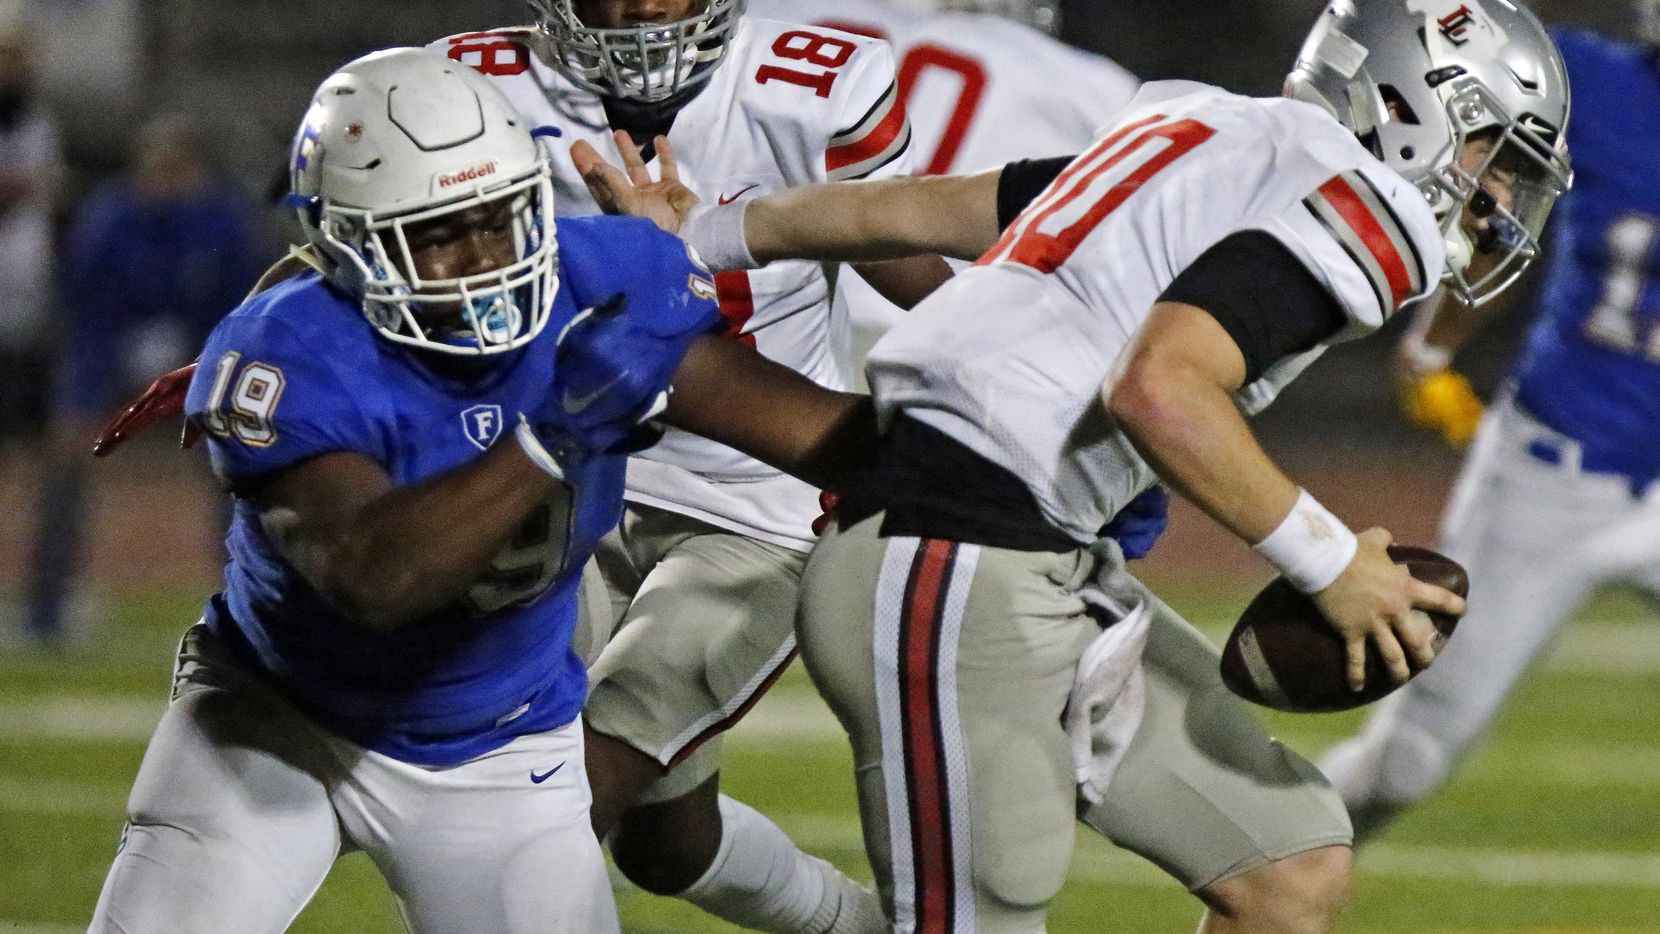 Lovejoy quarterback R.W. Rucker (10) is chased by Frisco defensive end Kenmunta Miller (19) during the first half of a game at Frisco ISD Memorial Stadium on Friday, Nov. 20, 2020. (Stewart F. House/Special Contributor)